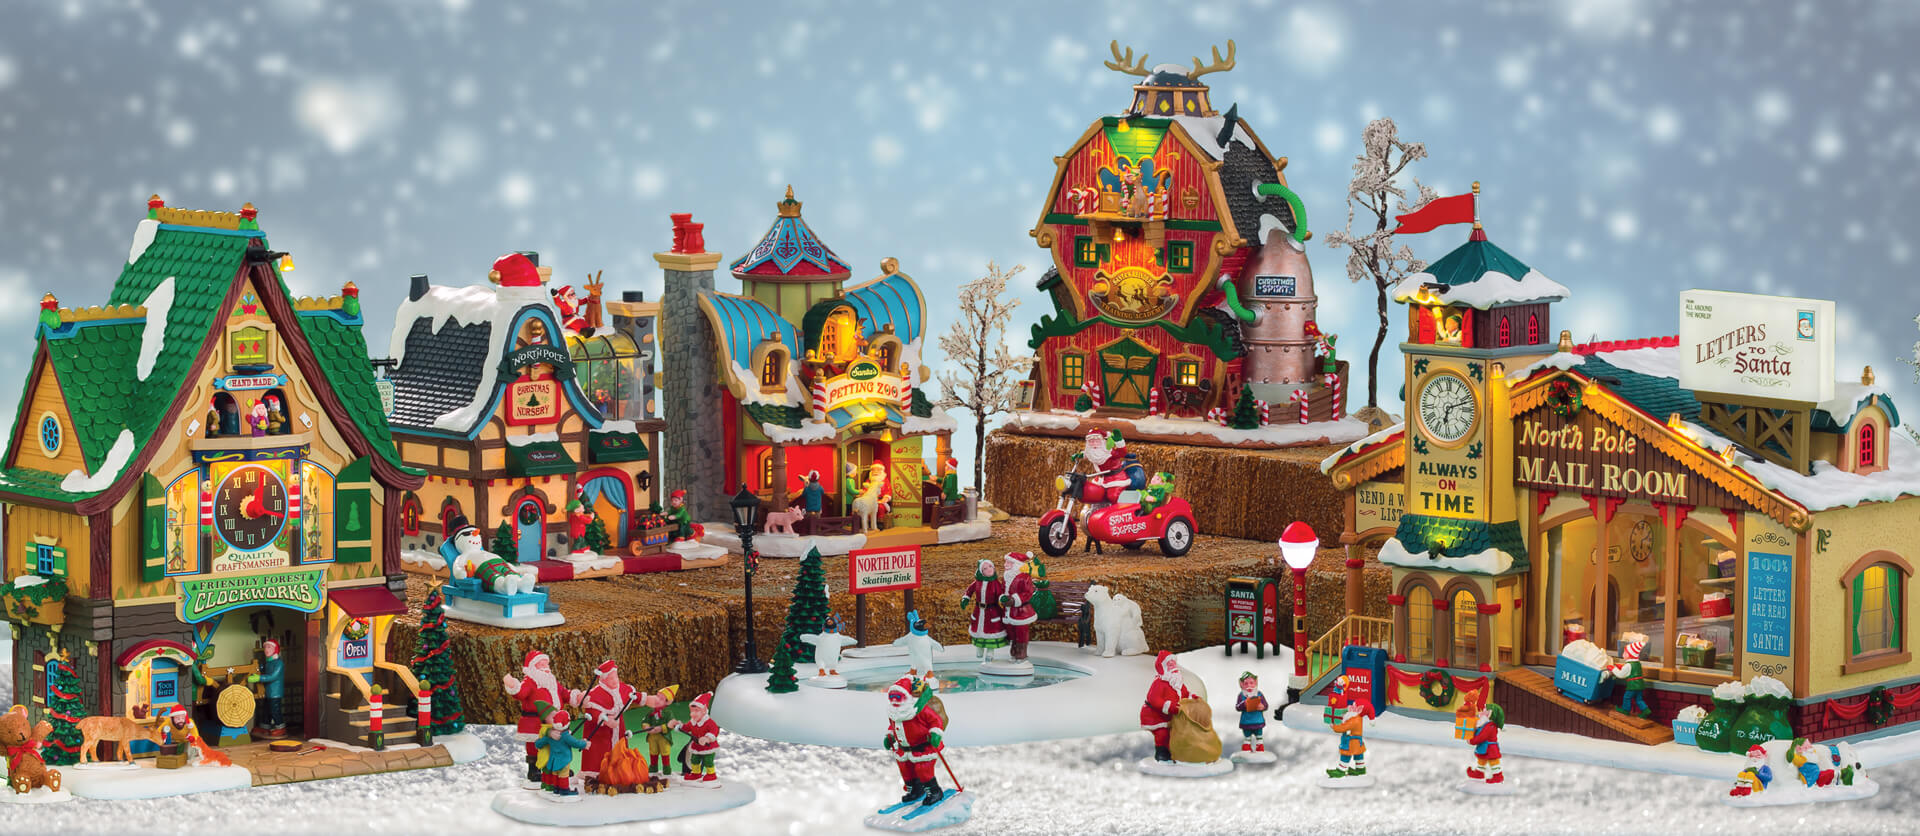 Lemax 2021 Christmas Village House Lemax Village Collectibles Halloween And Christmas Villages